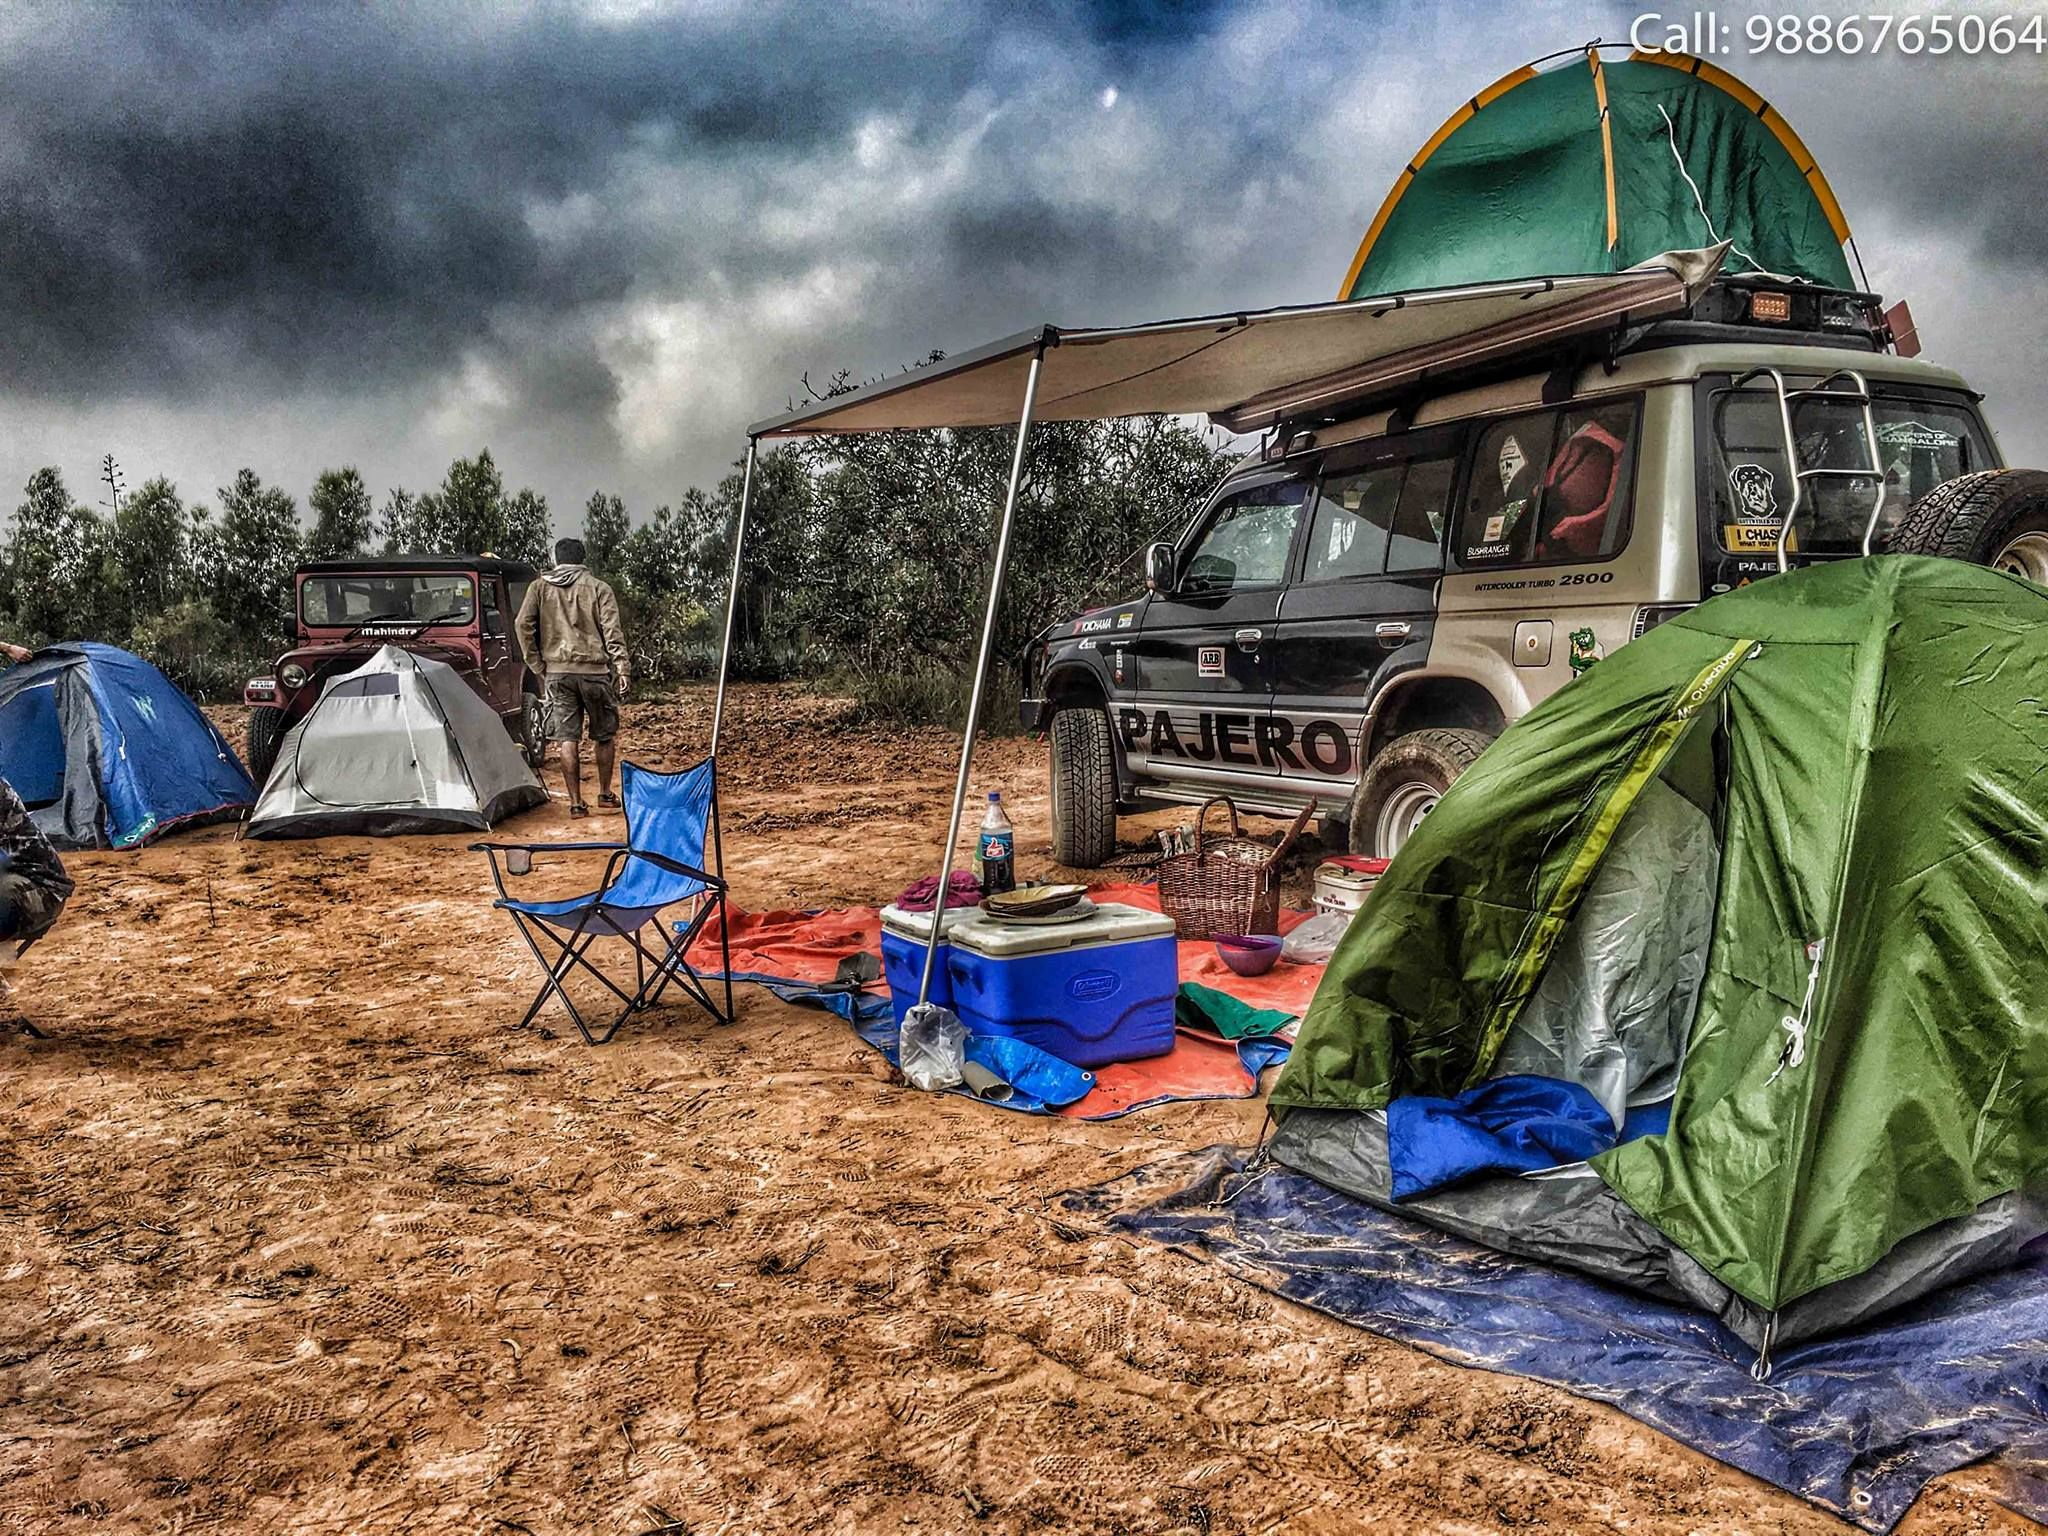 BBQ Food & Camping this New Years? Date/Time: December ...